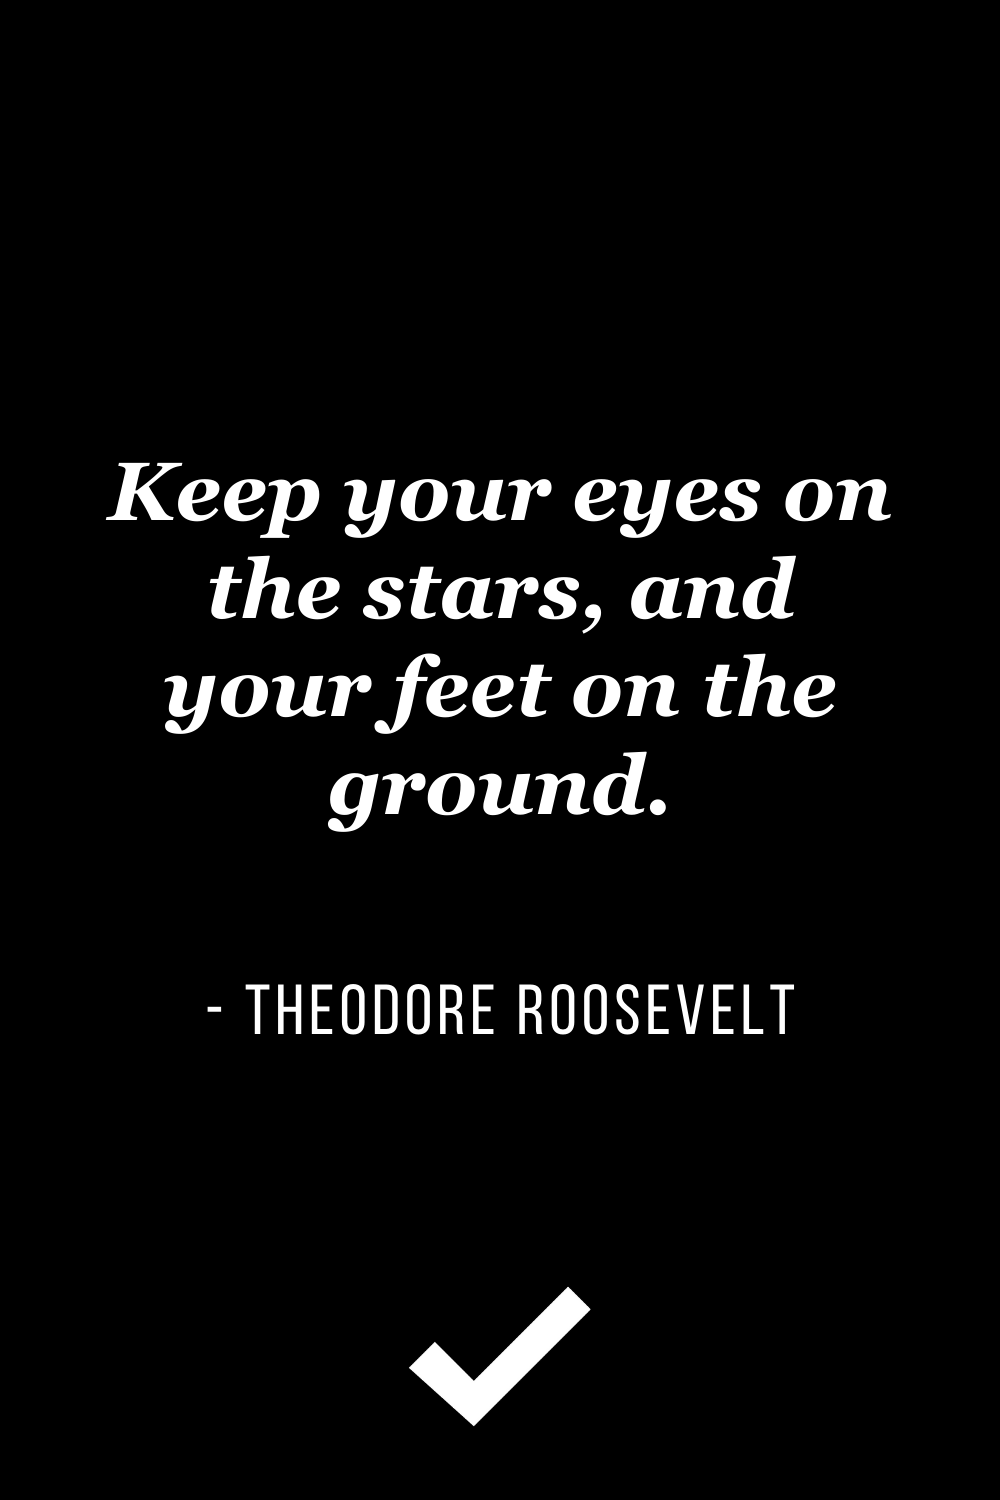 """""""Keep your eyes on the stars, and your feet on the ground."""" – Theodore Roosevelt"""